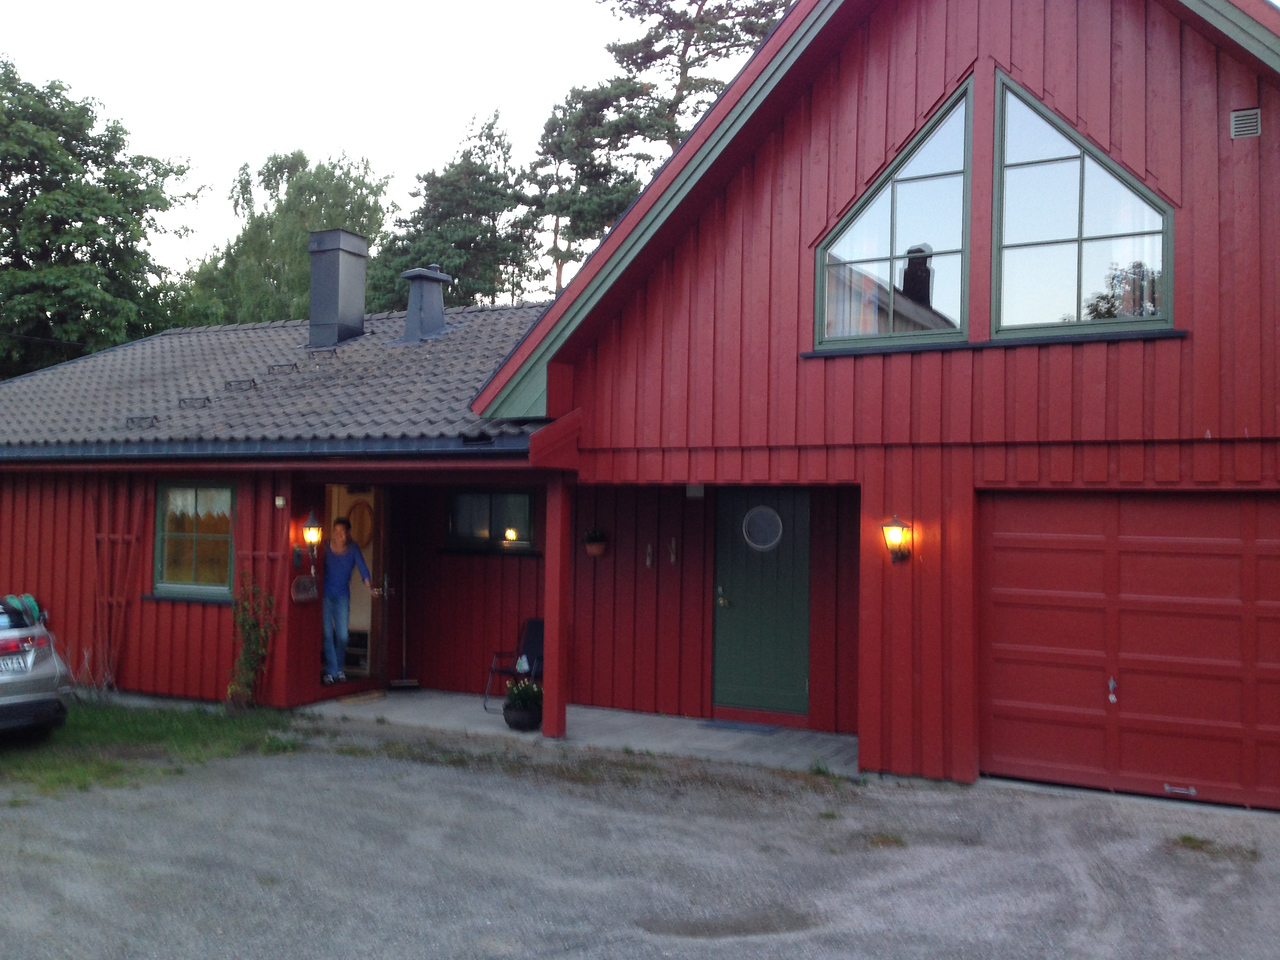 Home of my third-cousin, Tove.